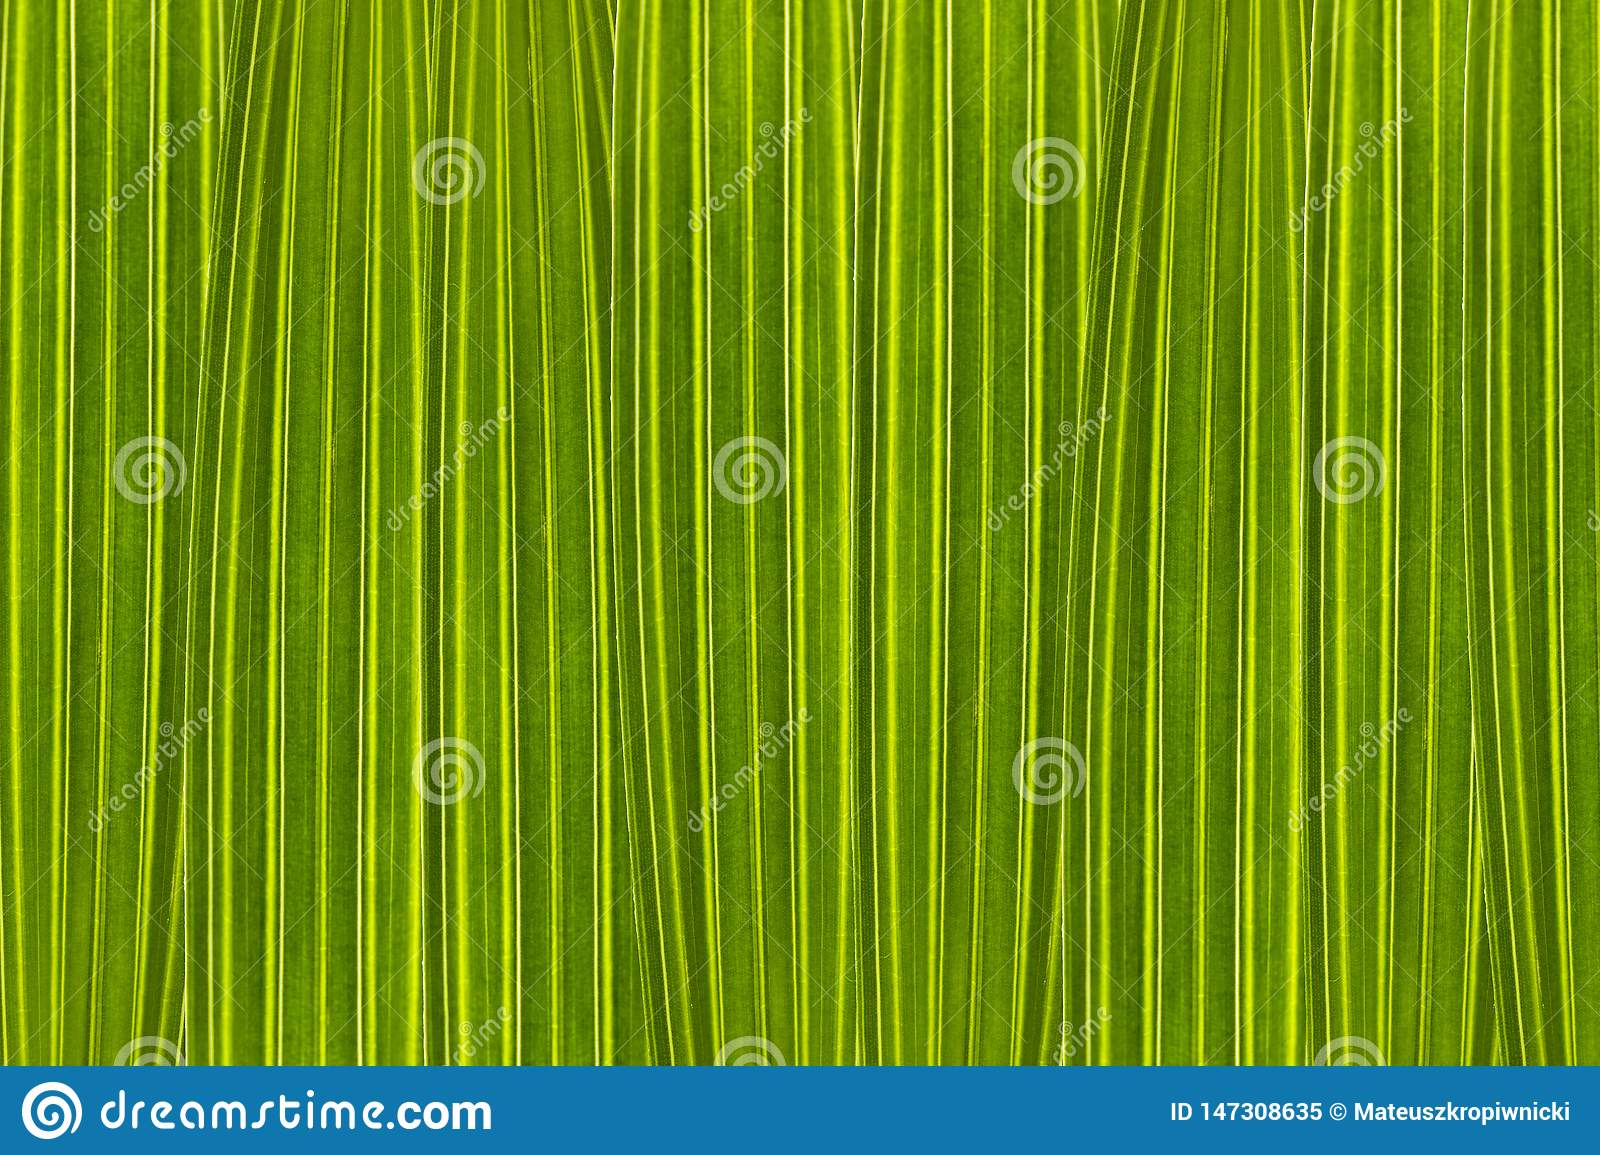 Green background composed of palm tree leaves in high magnification